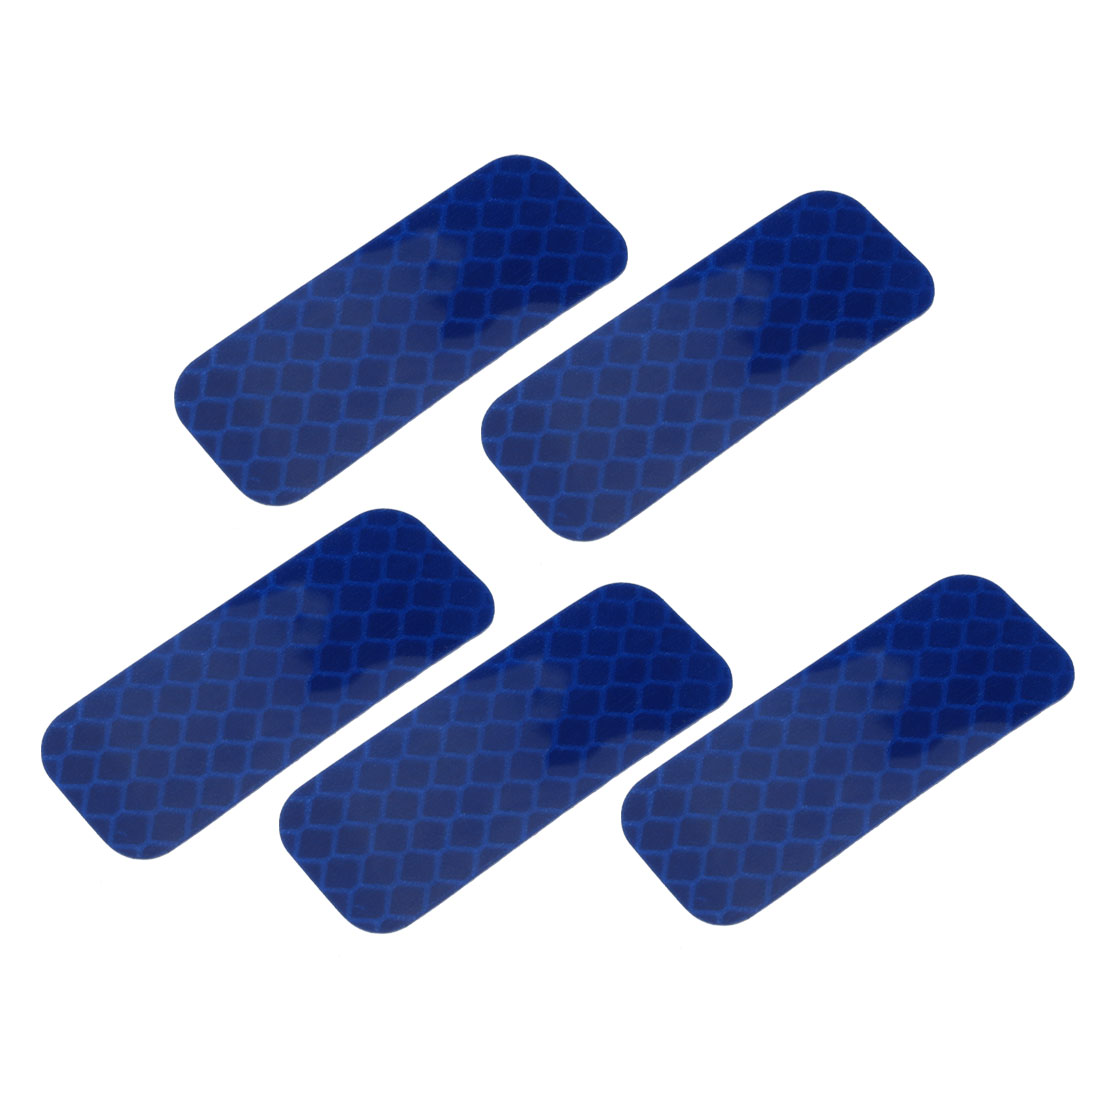 5pcs Honeycomb Reflective Warning Tape Film Sticker Blue 20mm Width 50mm Length